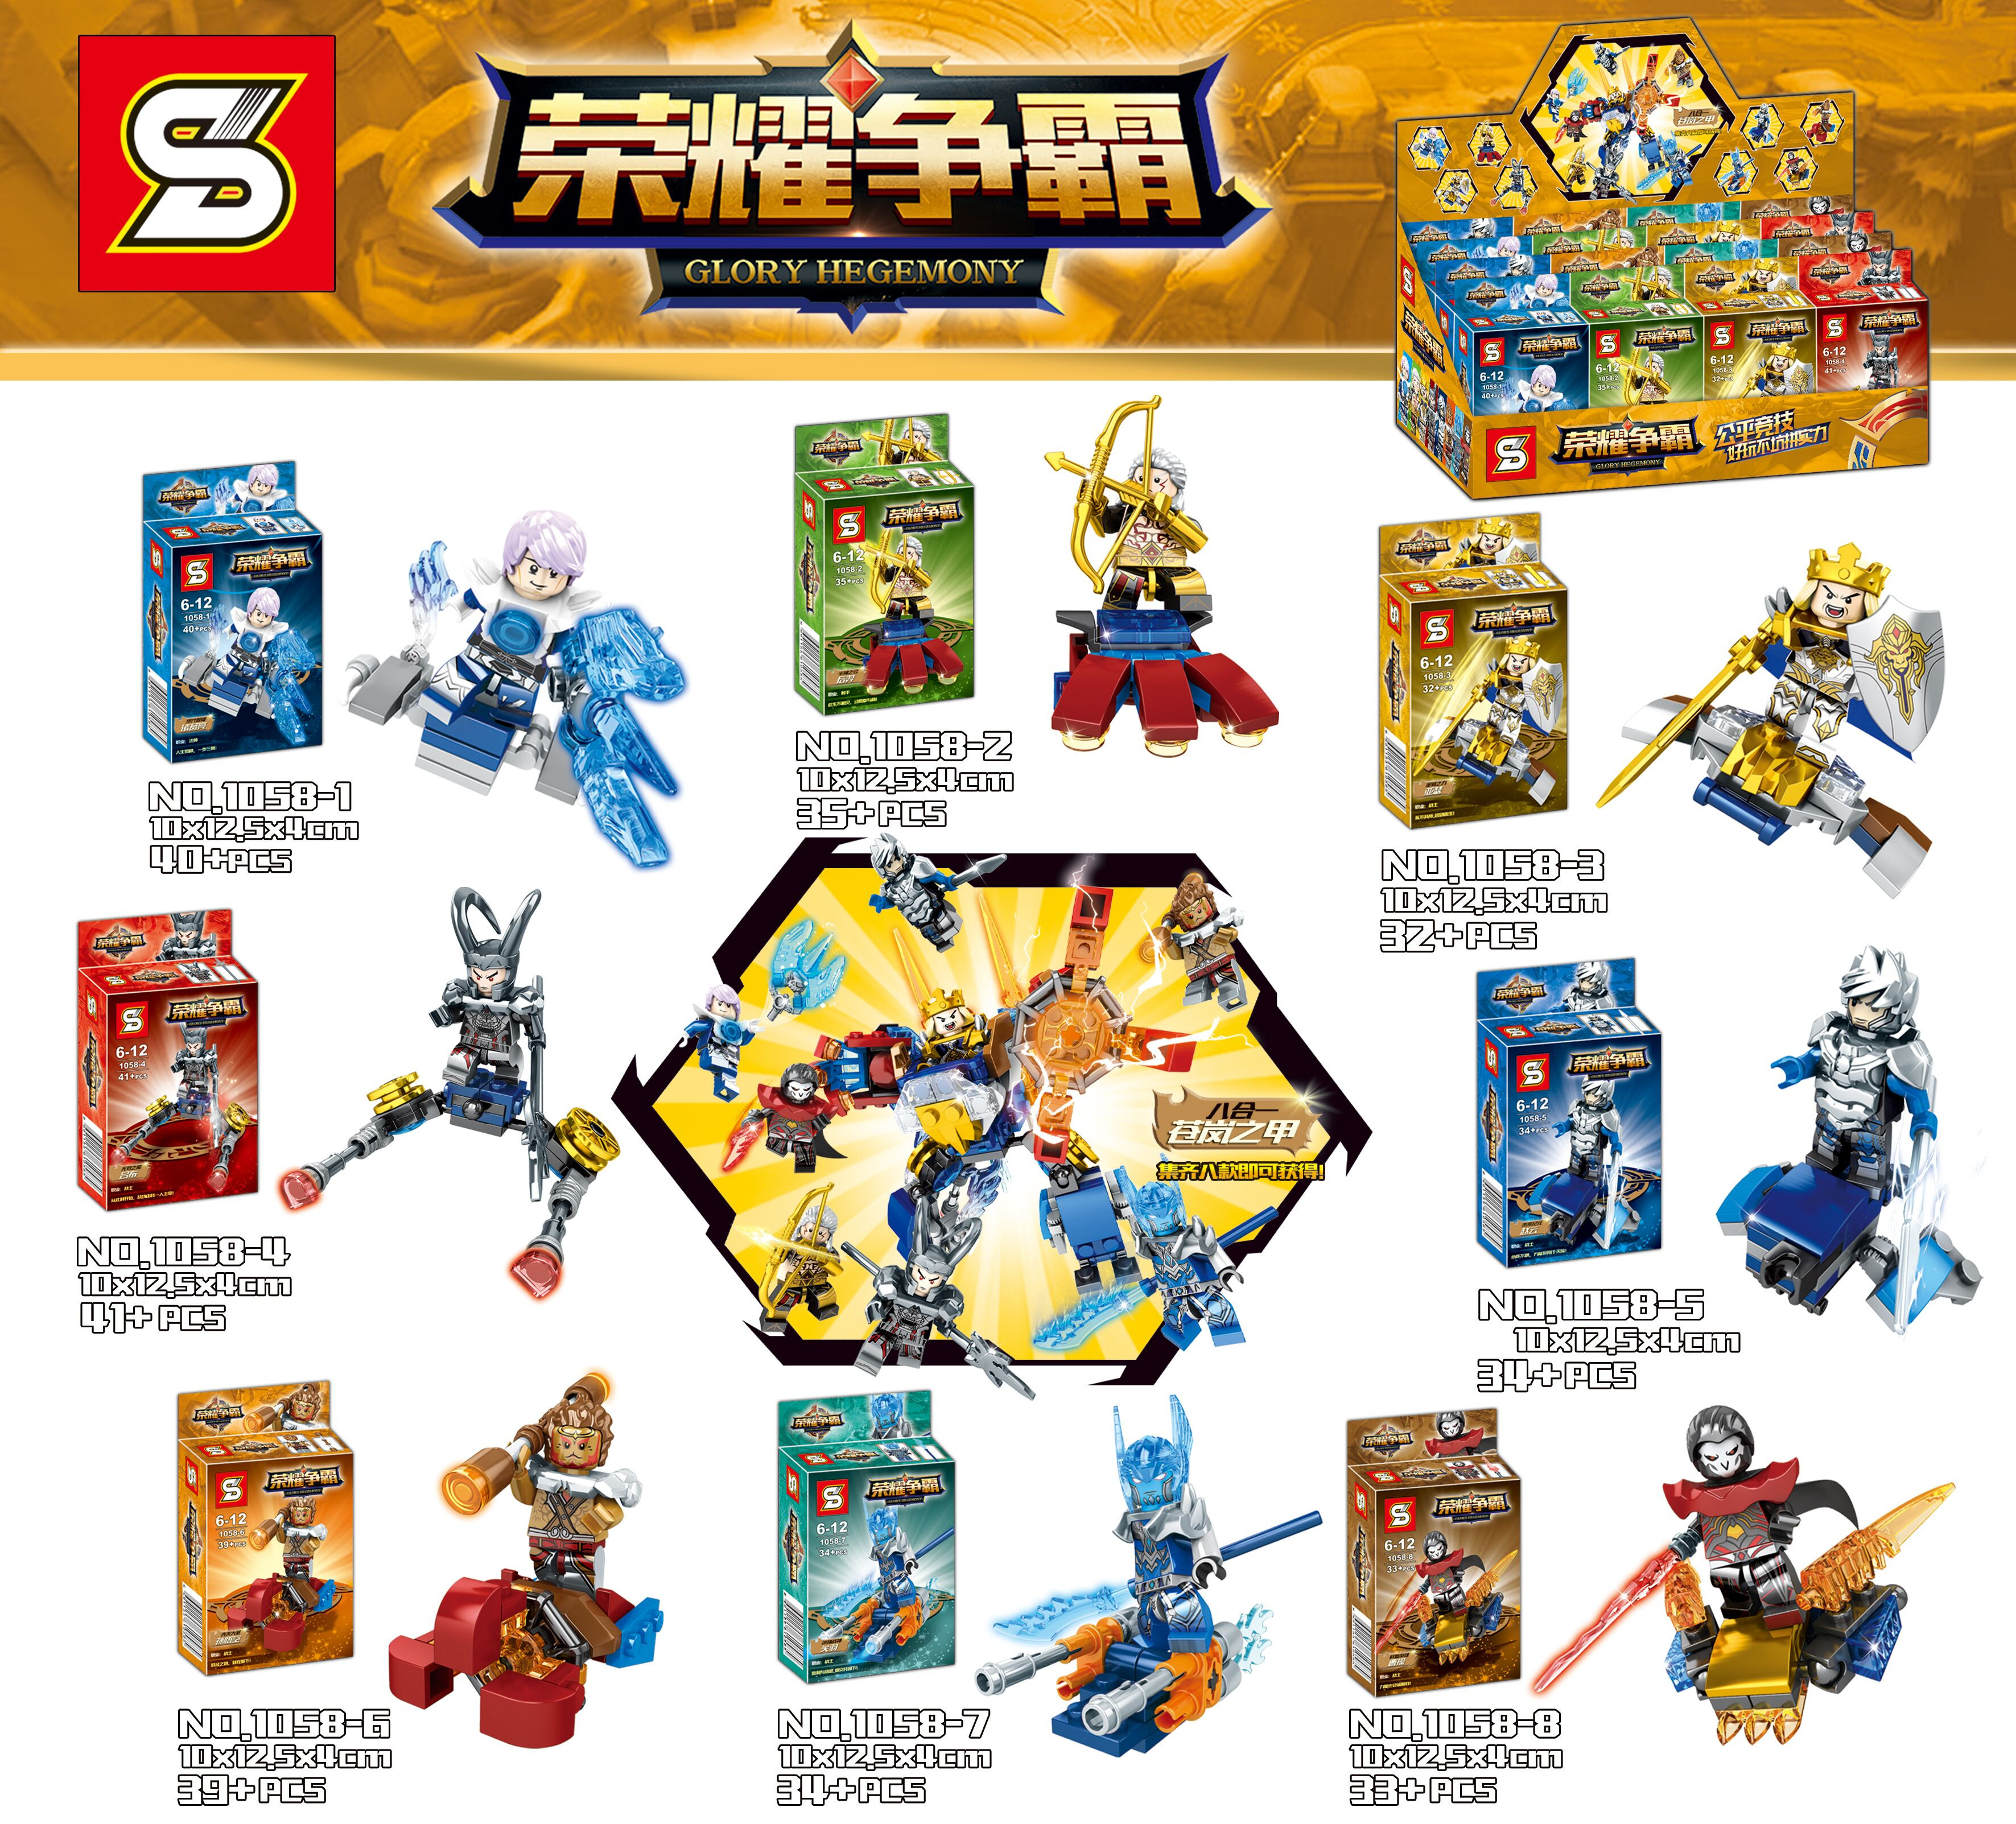 DR.TONG Enlighten Figures Glory of Kings One of China Romance the Three Kingdoms King Knight Heroes Building Block Toys SY1058 martin g a knight of the seven kingdoms song of ice